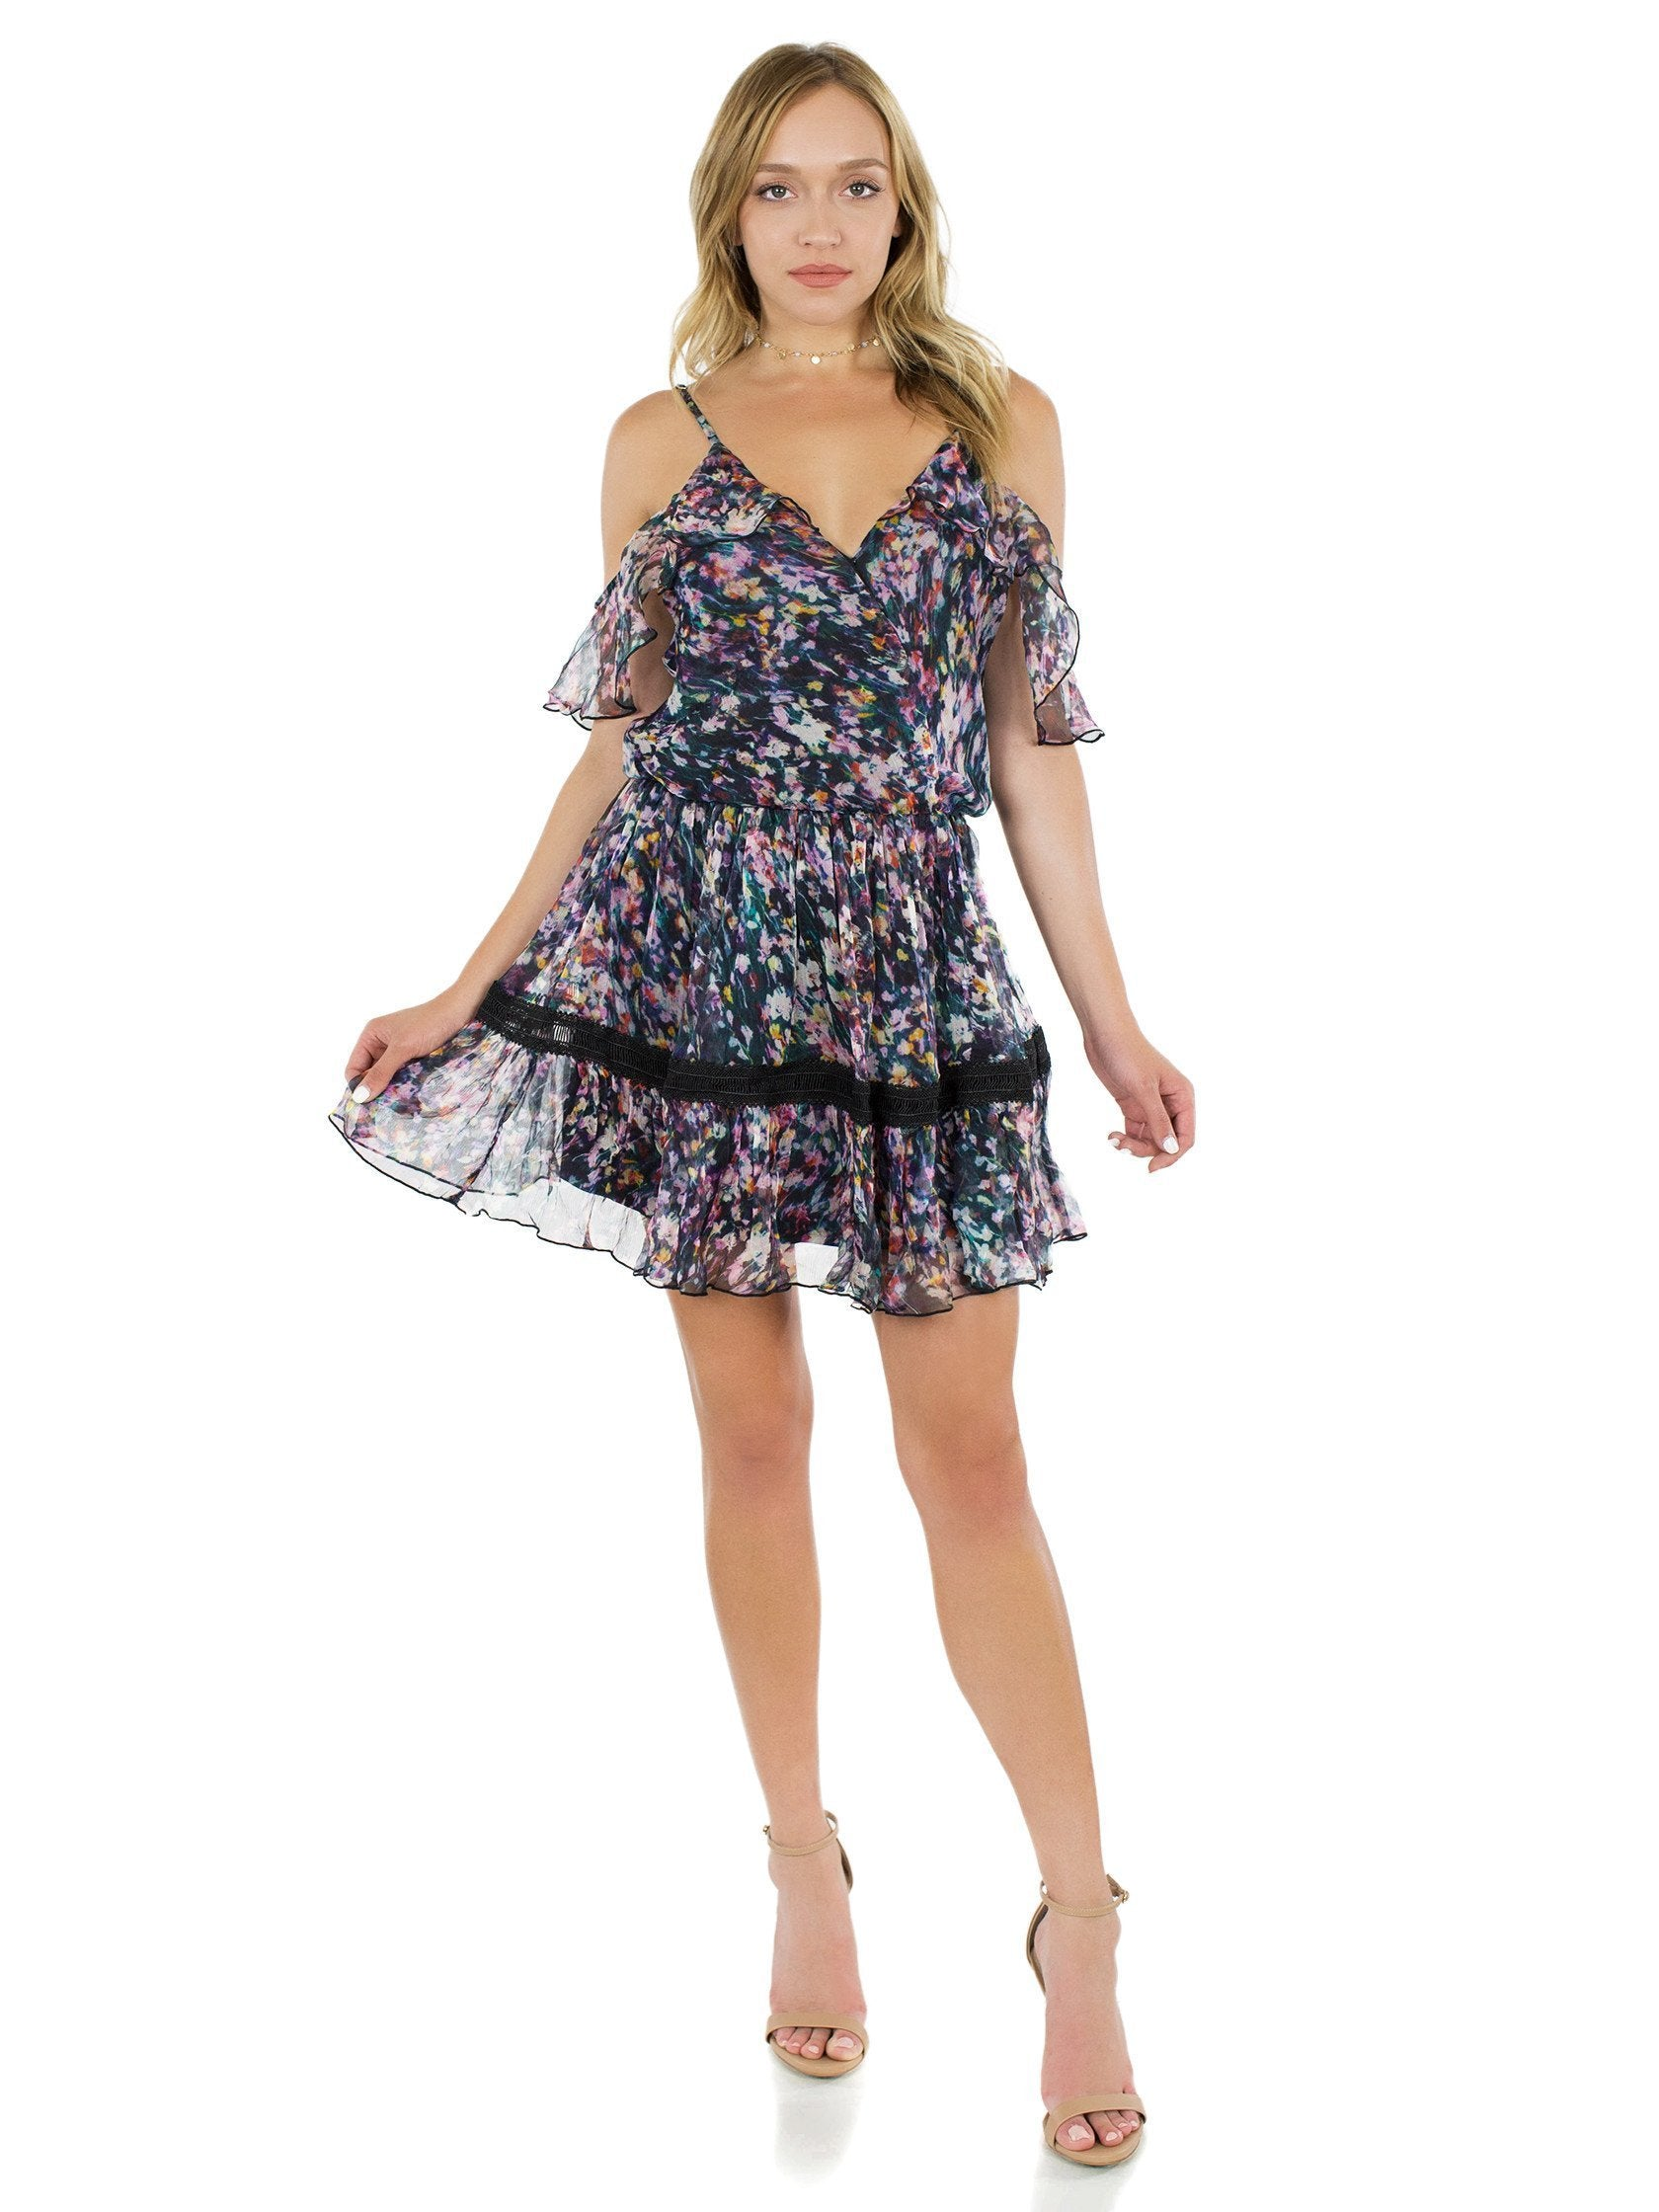 Girl outfit in a dress rental from Karina Grimaldi called Aiden Print Mini Dress